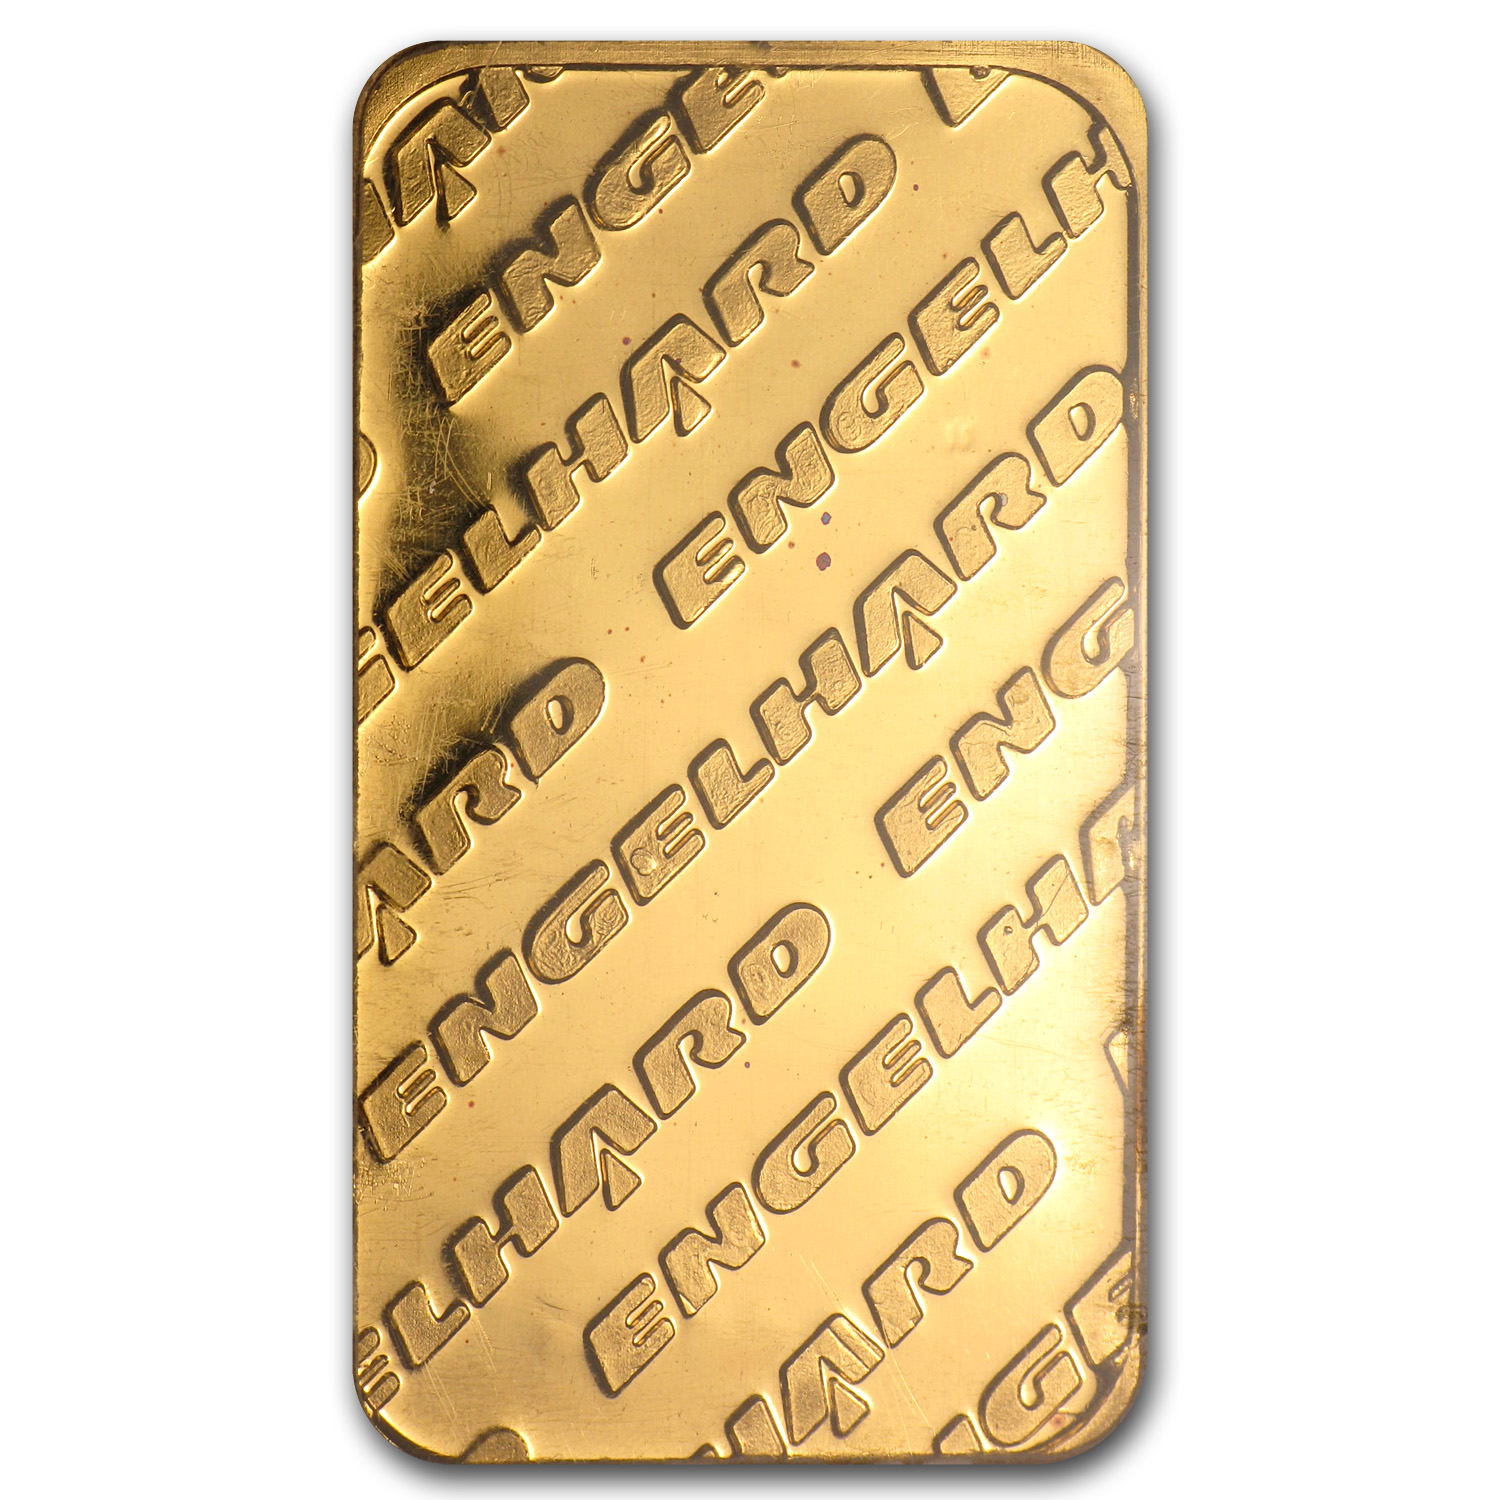 1 oz Gold Bars - Engelhard ('Eagle' logo)